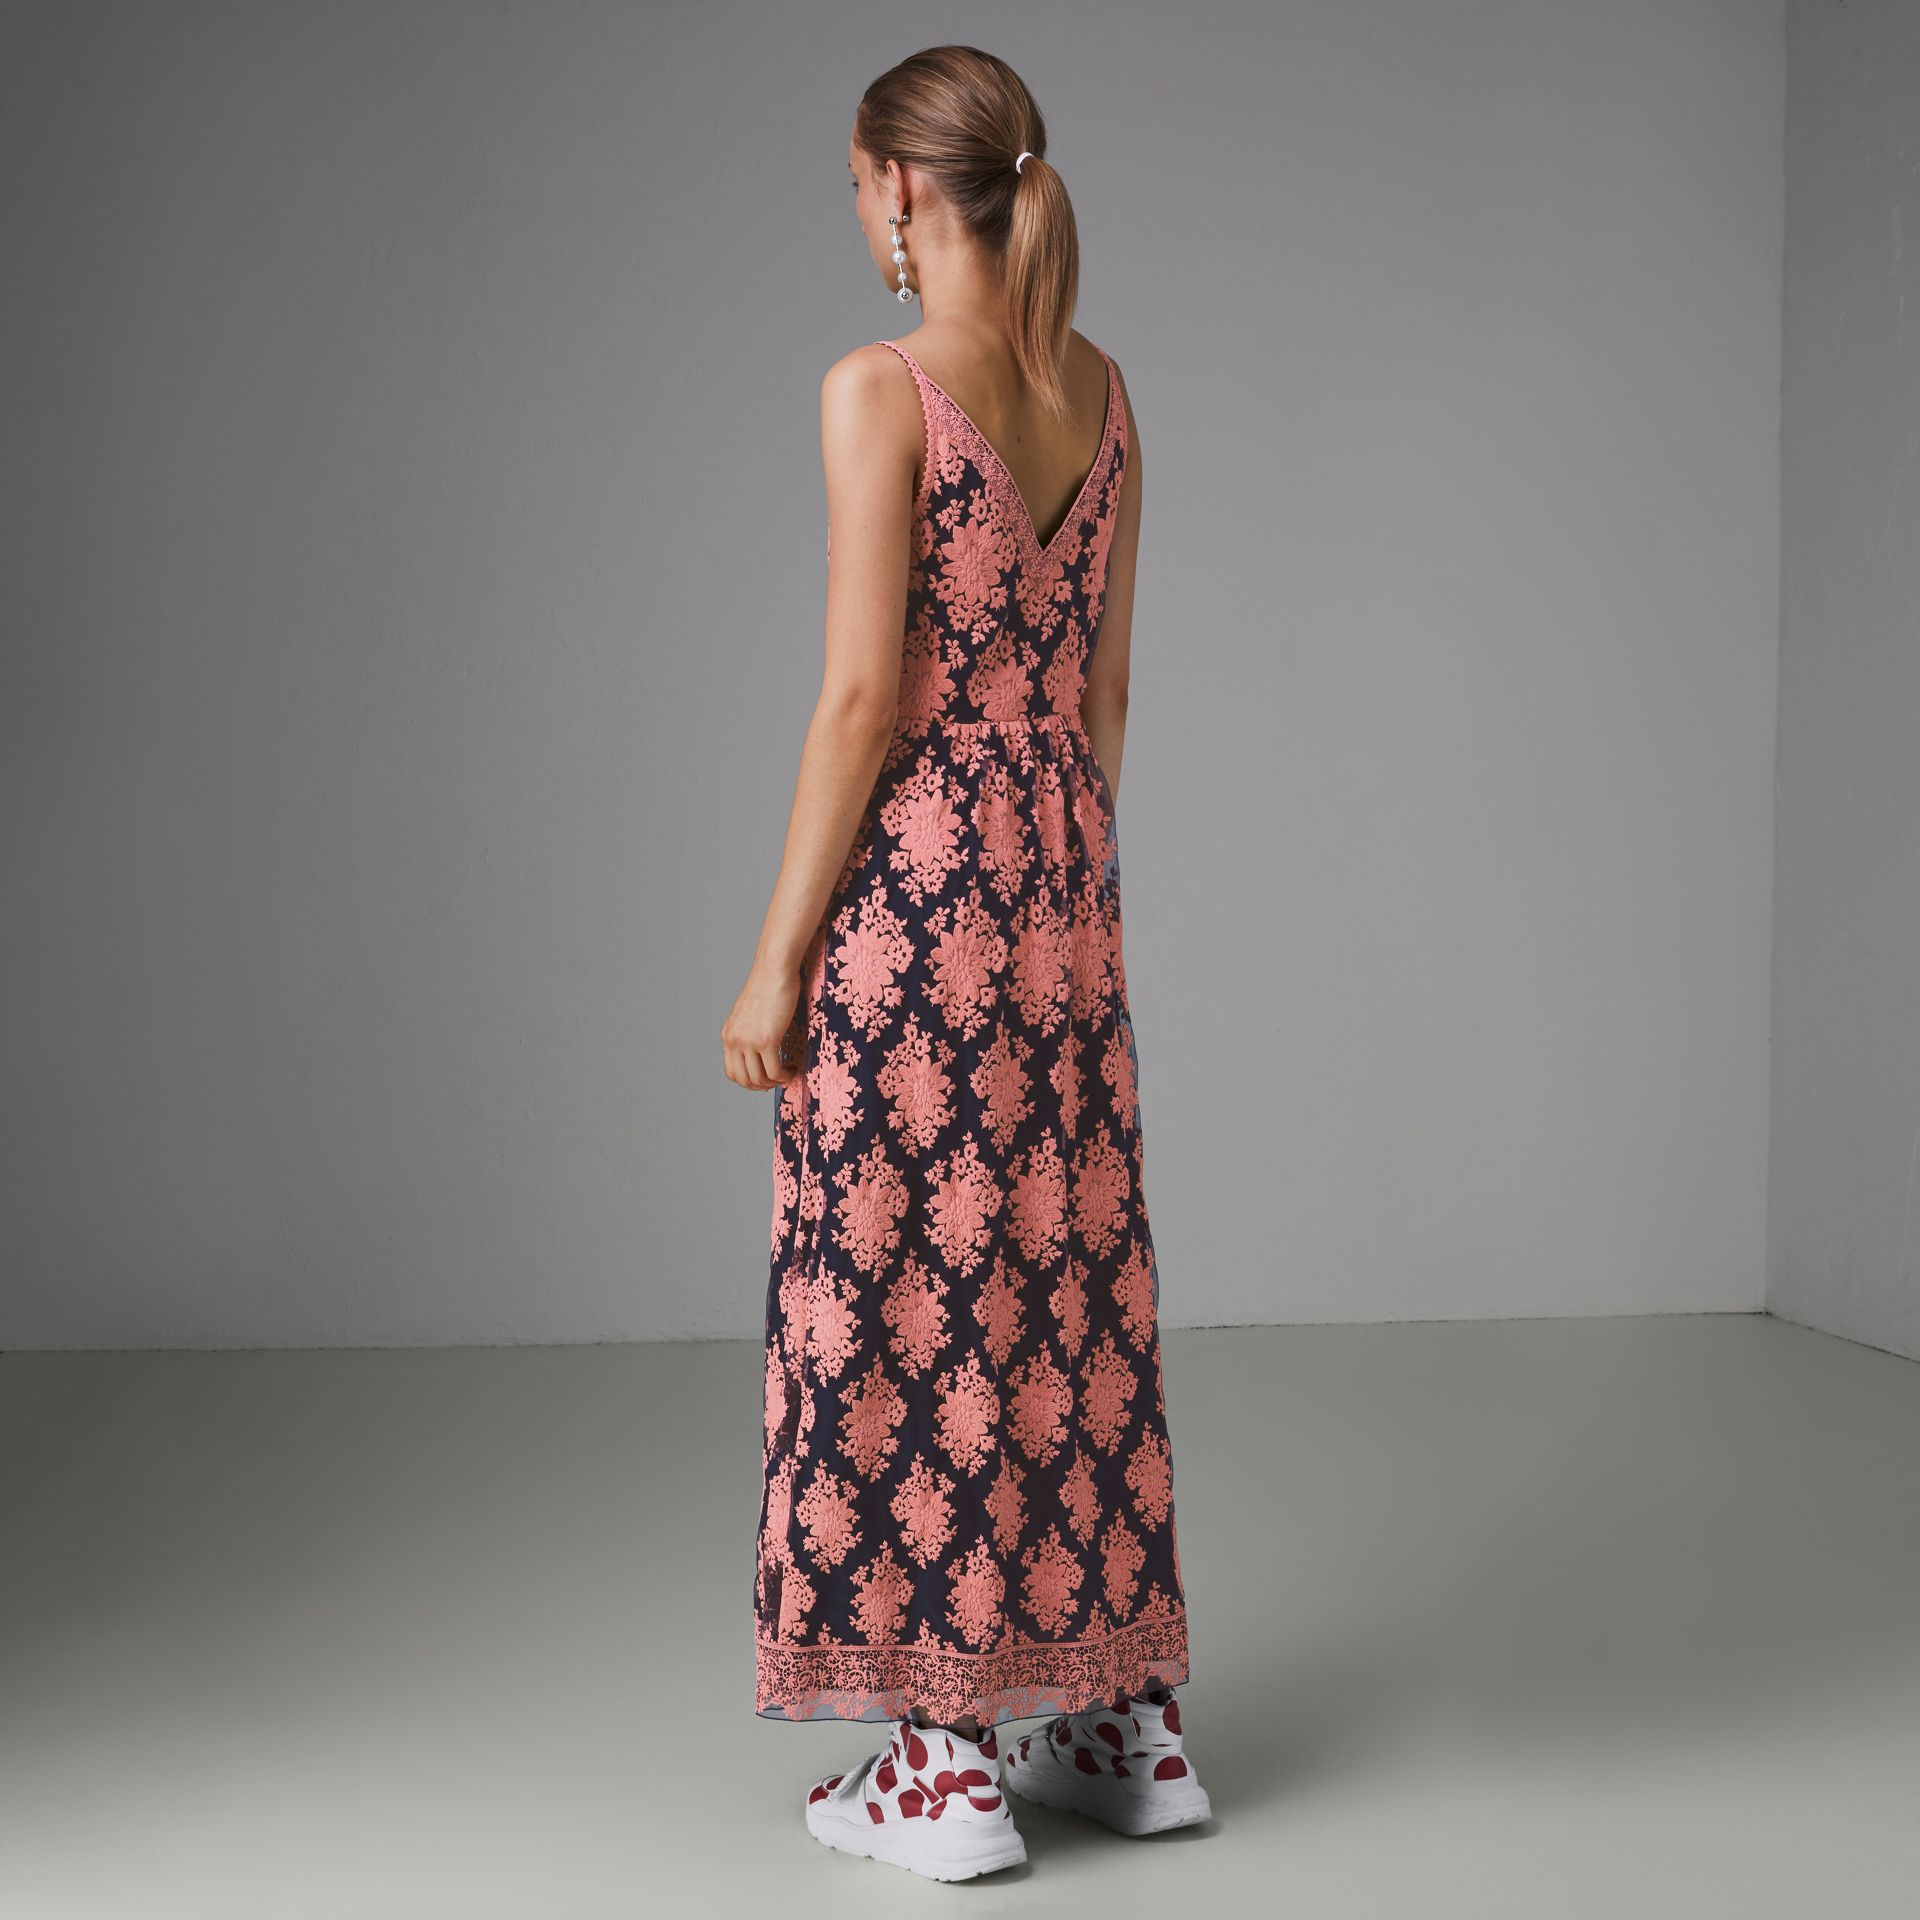 Floral-embroidered Sleeveless Dress in Rose/midnight Blue - Women | Burberry United States - gallery image 2